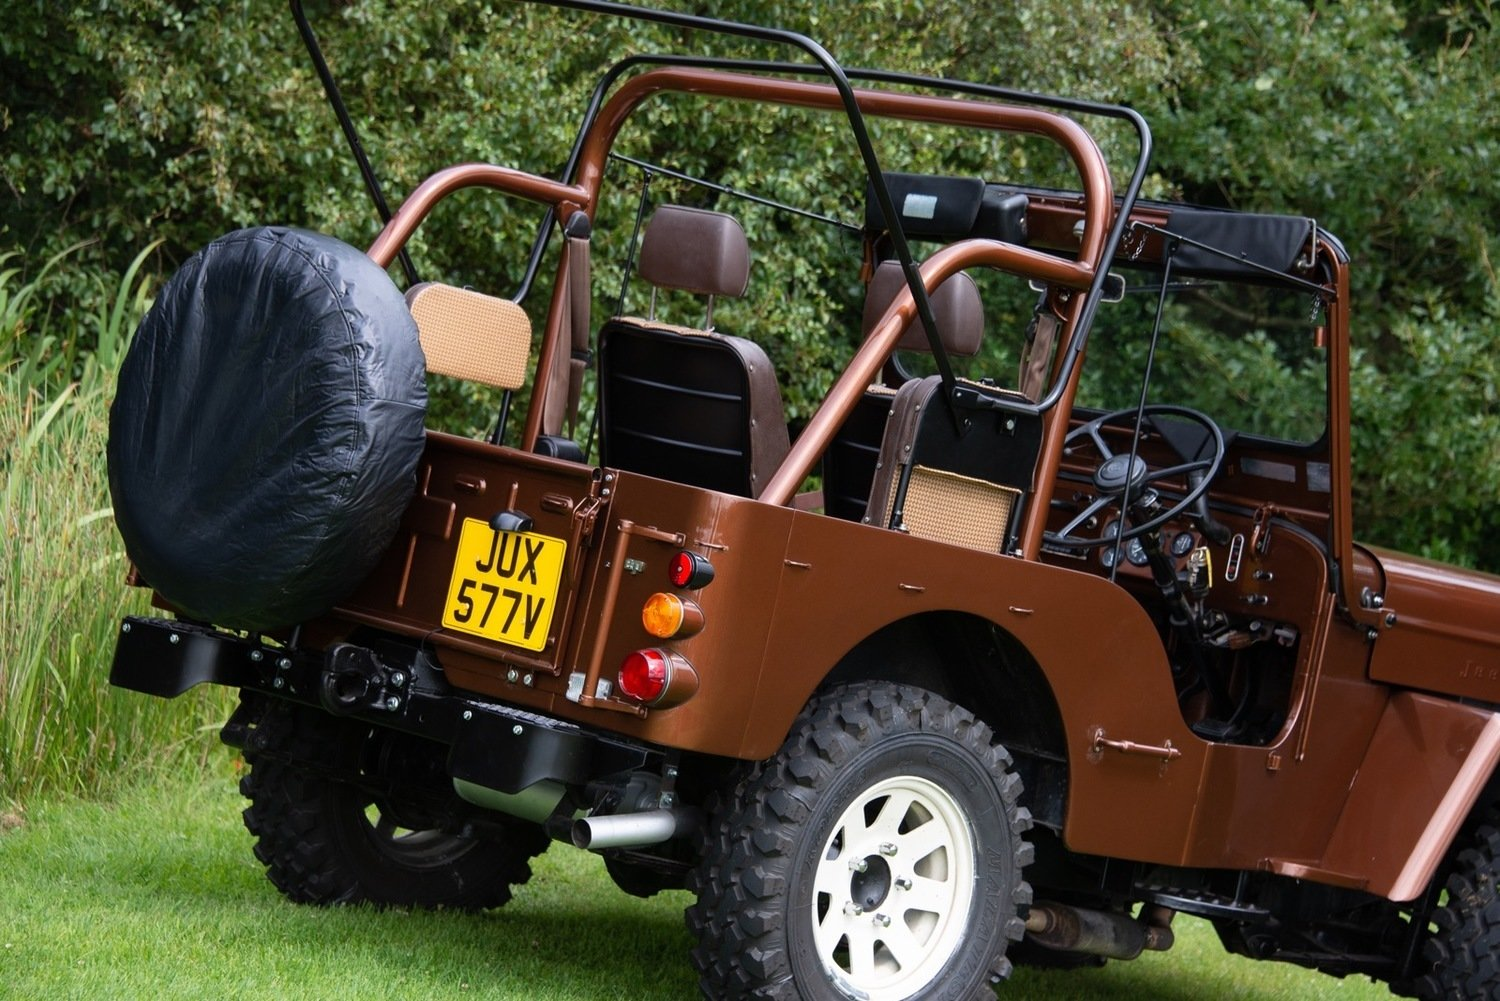 1980 Mitsibishi Jeep Wiley J58 Soft Top (SWB) For Sale (picture 3 of 6)